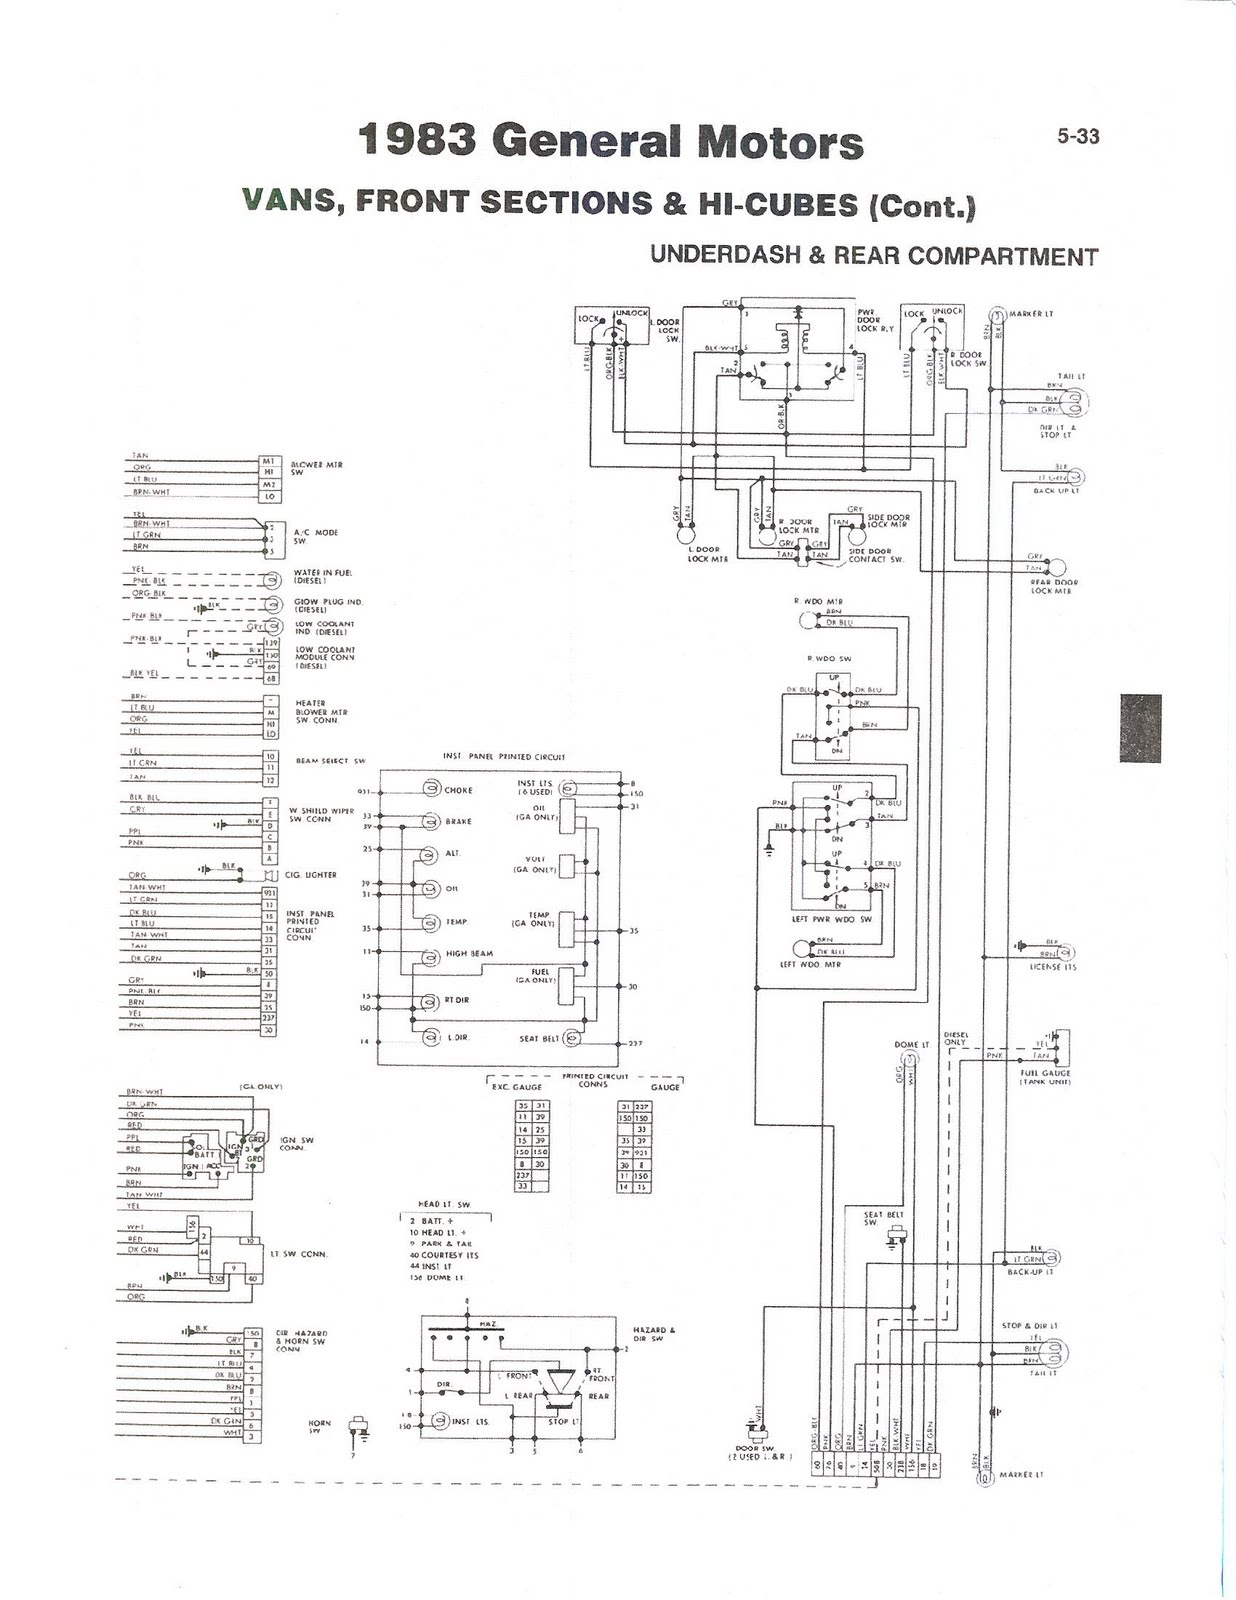 Bounder Motorhome Wiring Diagram | Wiring Diagram - Bounder Motorhome Wiring Diagram